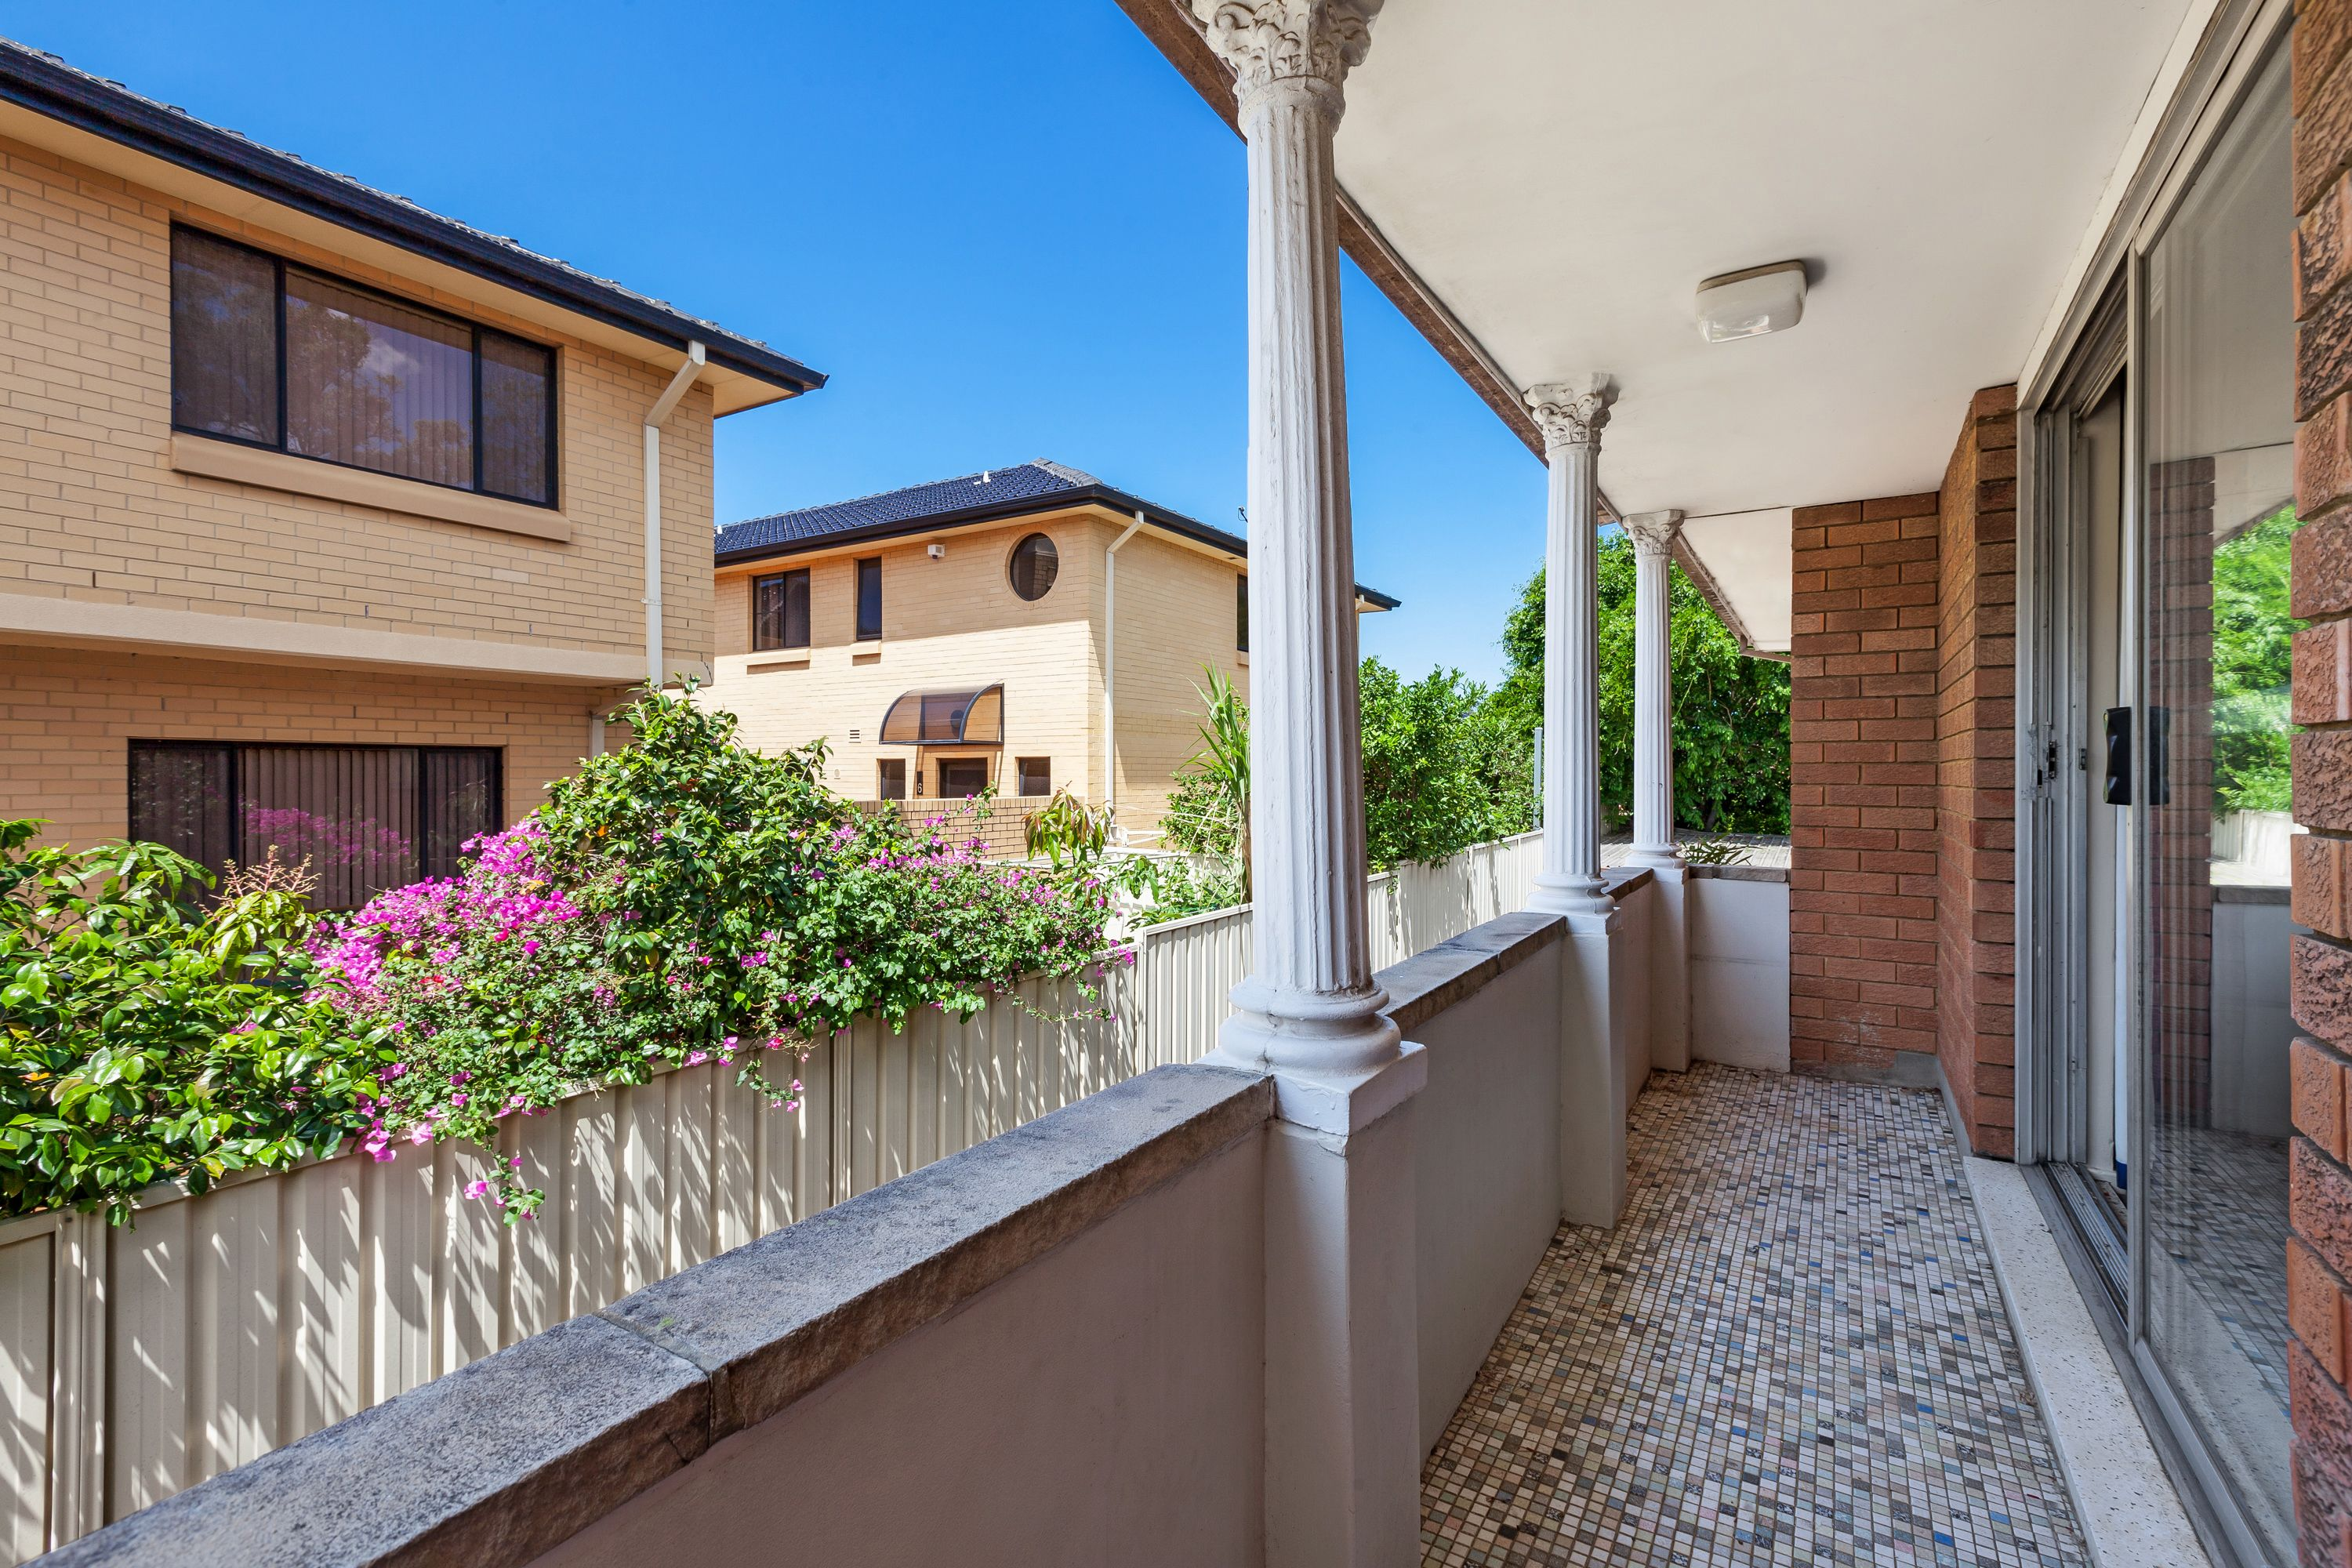 4/152 Wellbank Street North Strathfield 2137